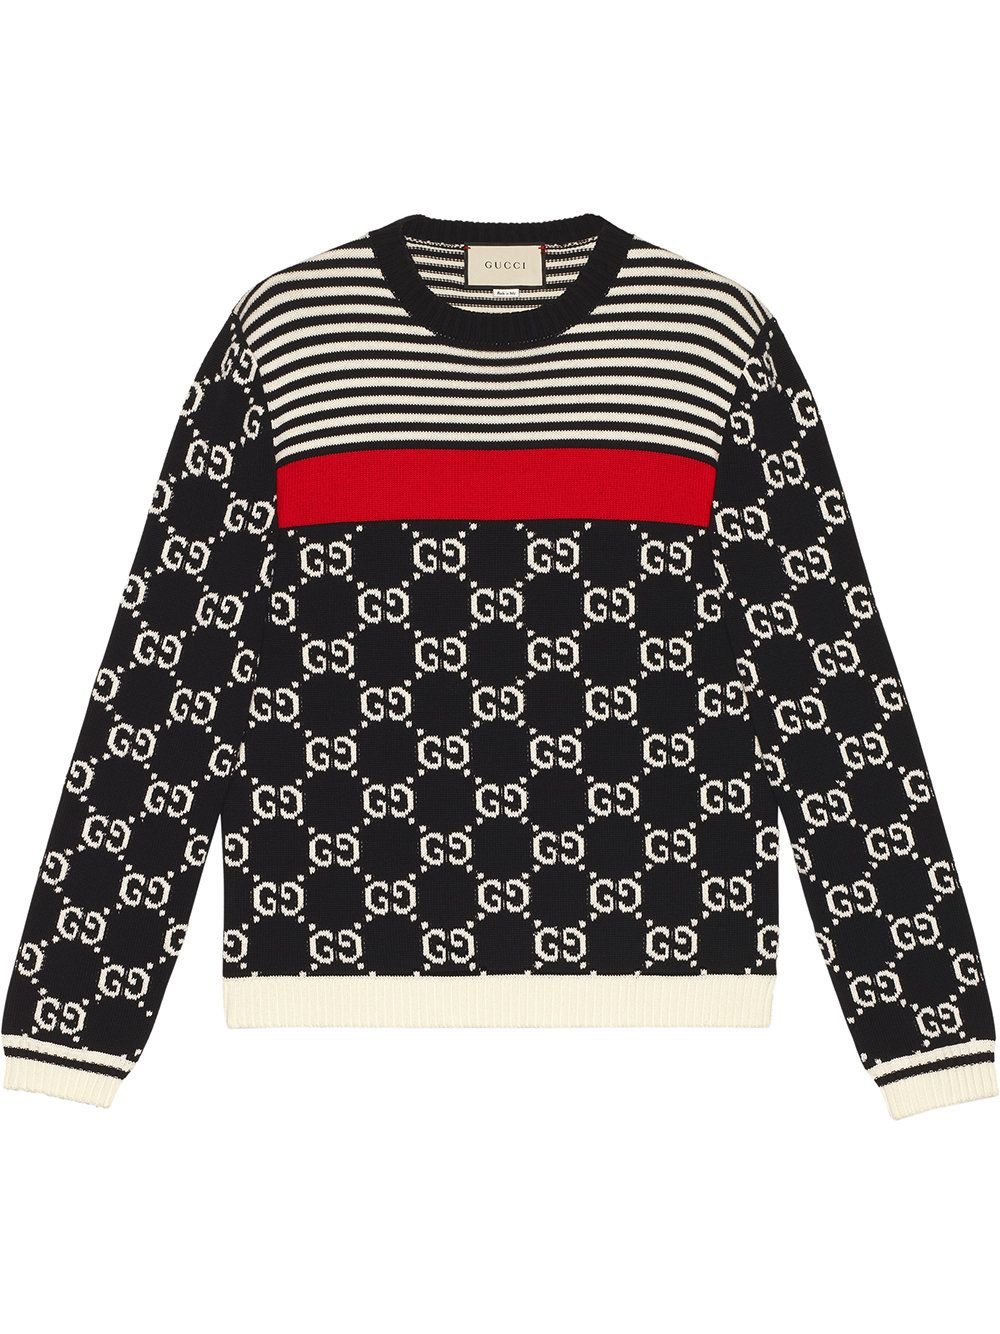 05582c08636 GUCCI Gg-Intarsia And Stripe Crew-Neck Sweater